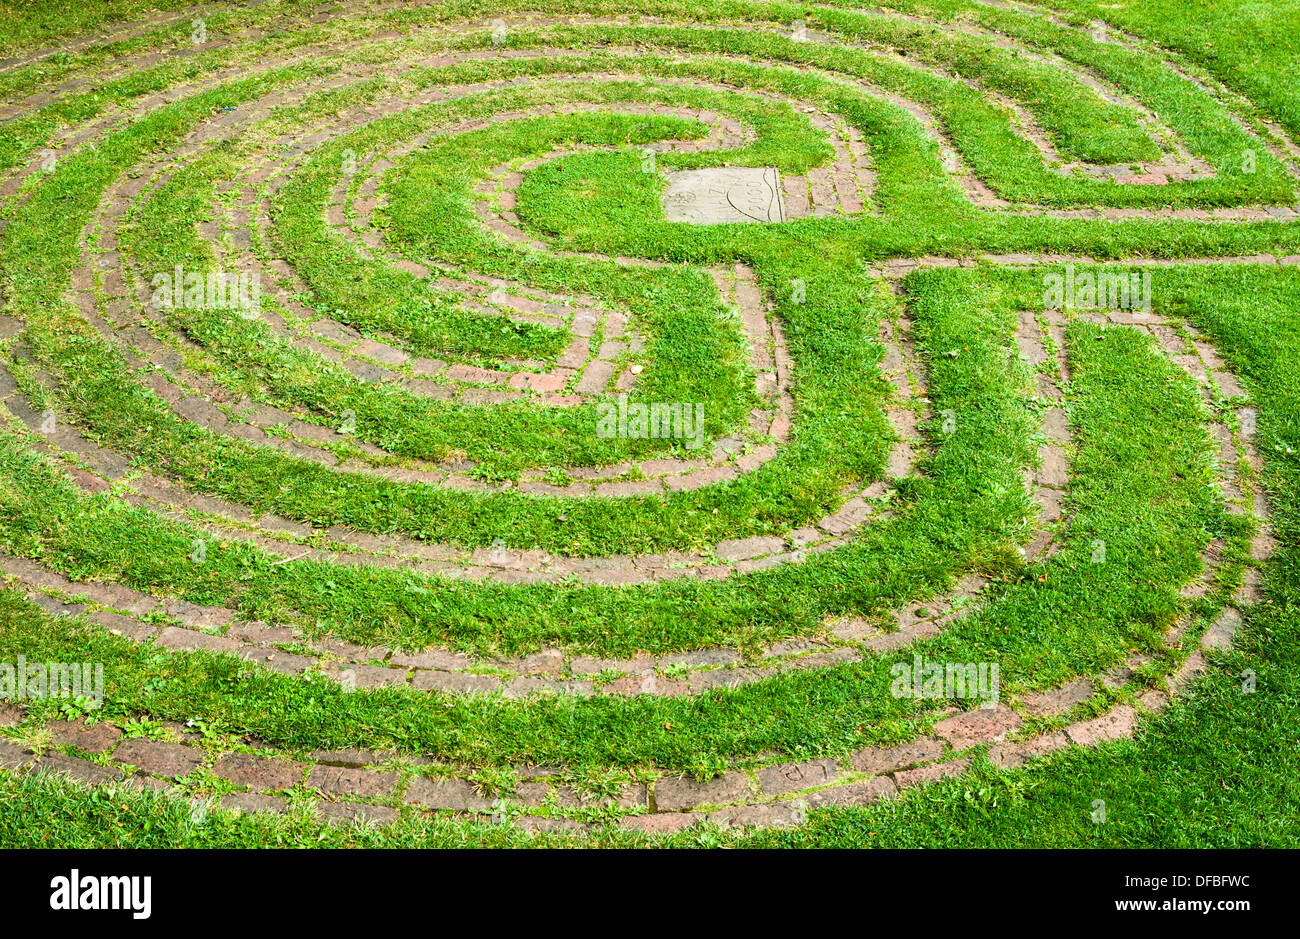 A labyrinth cut in grass - Stock Image